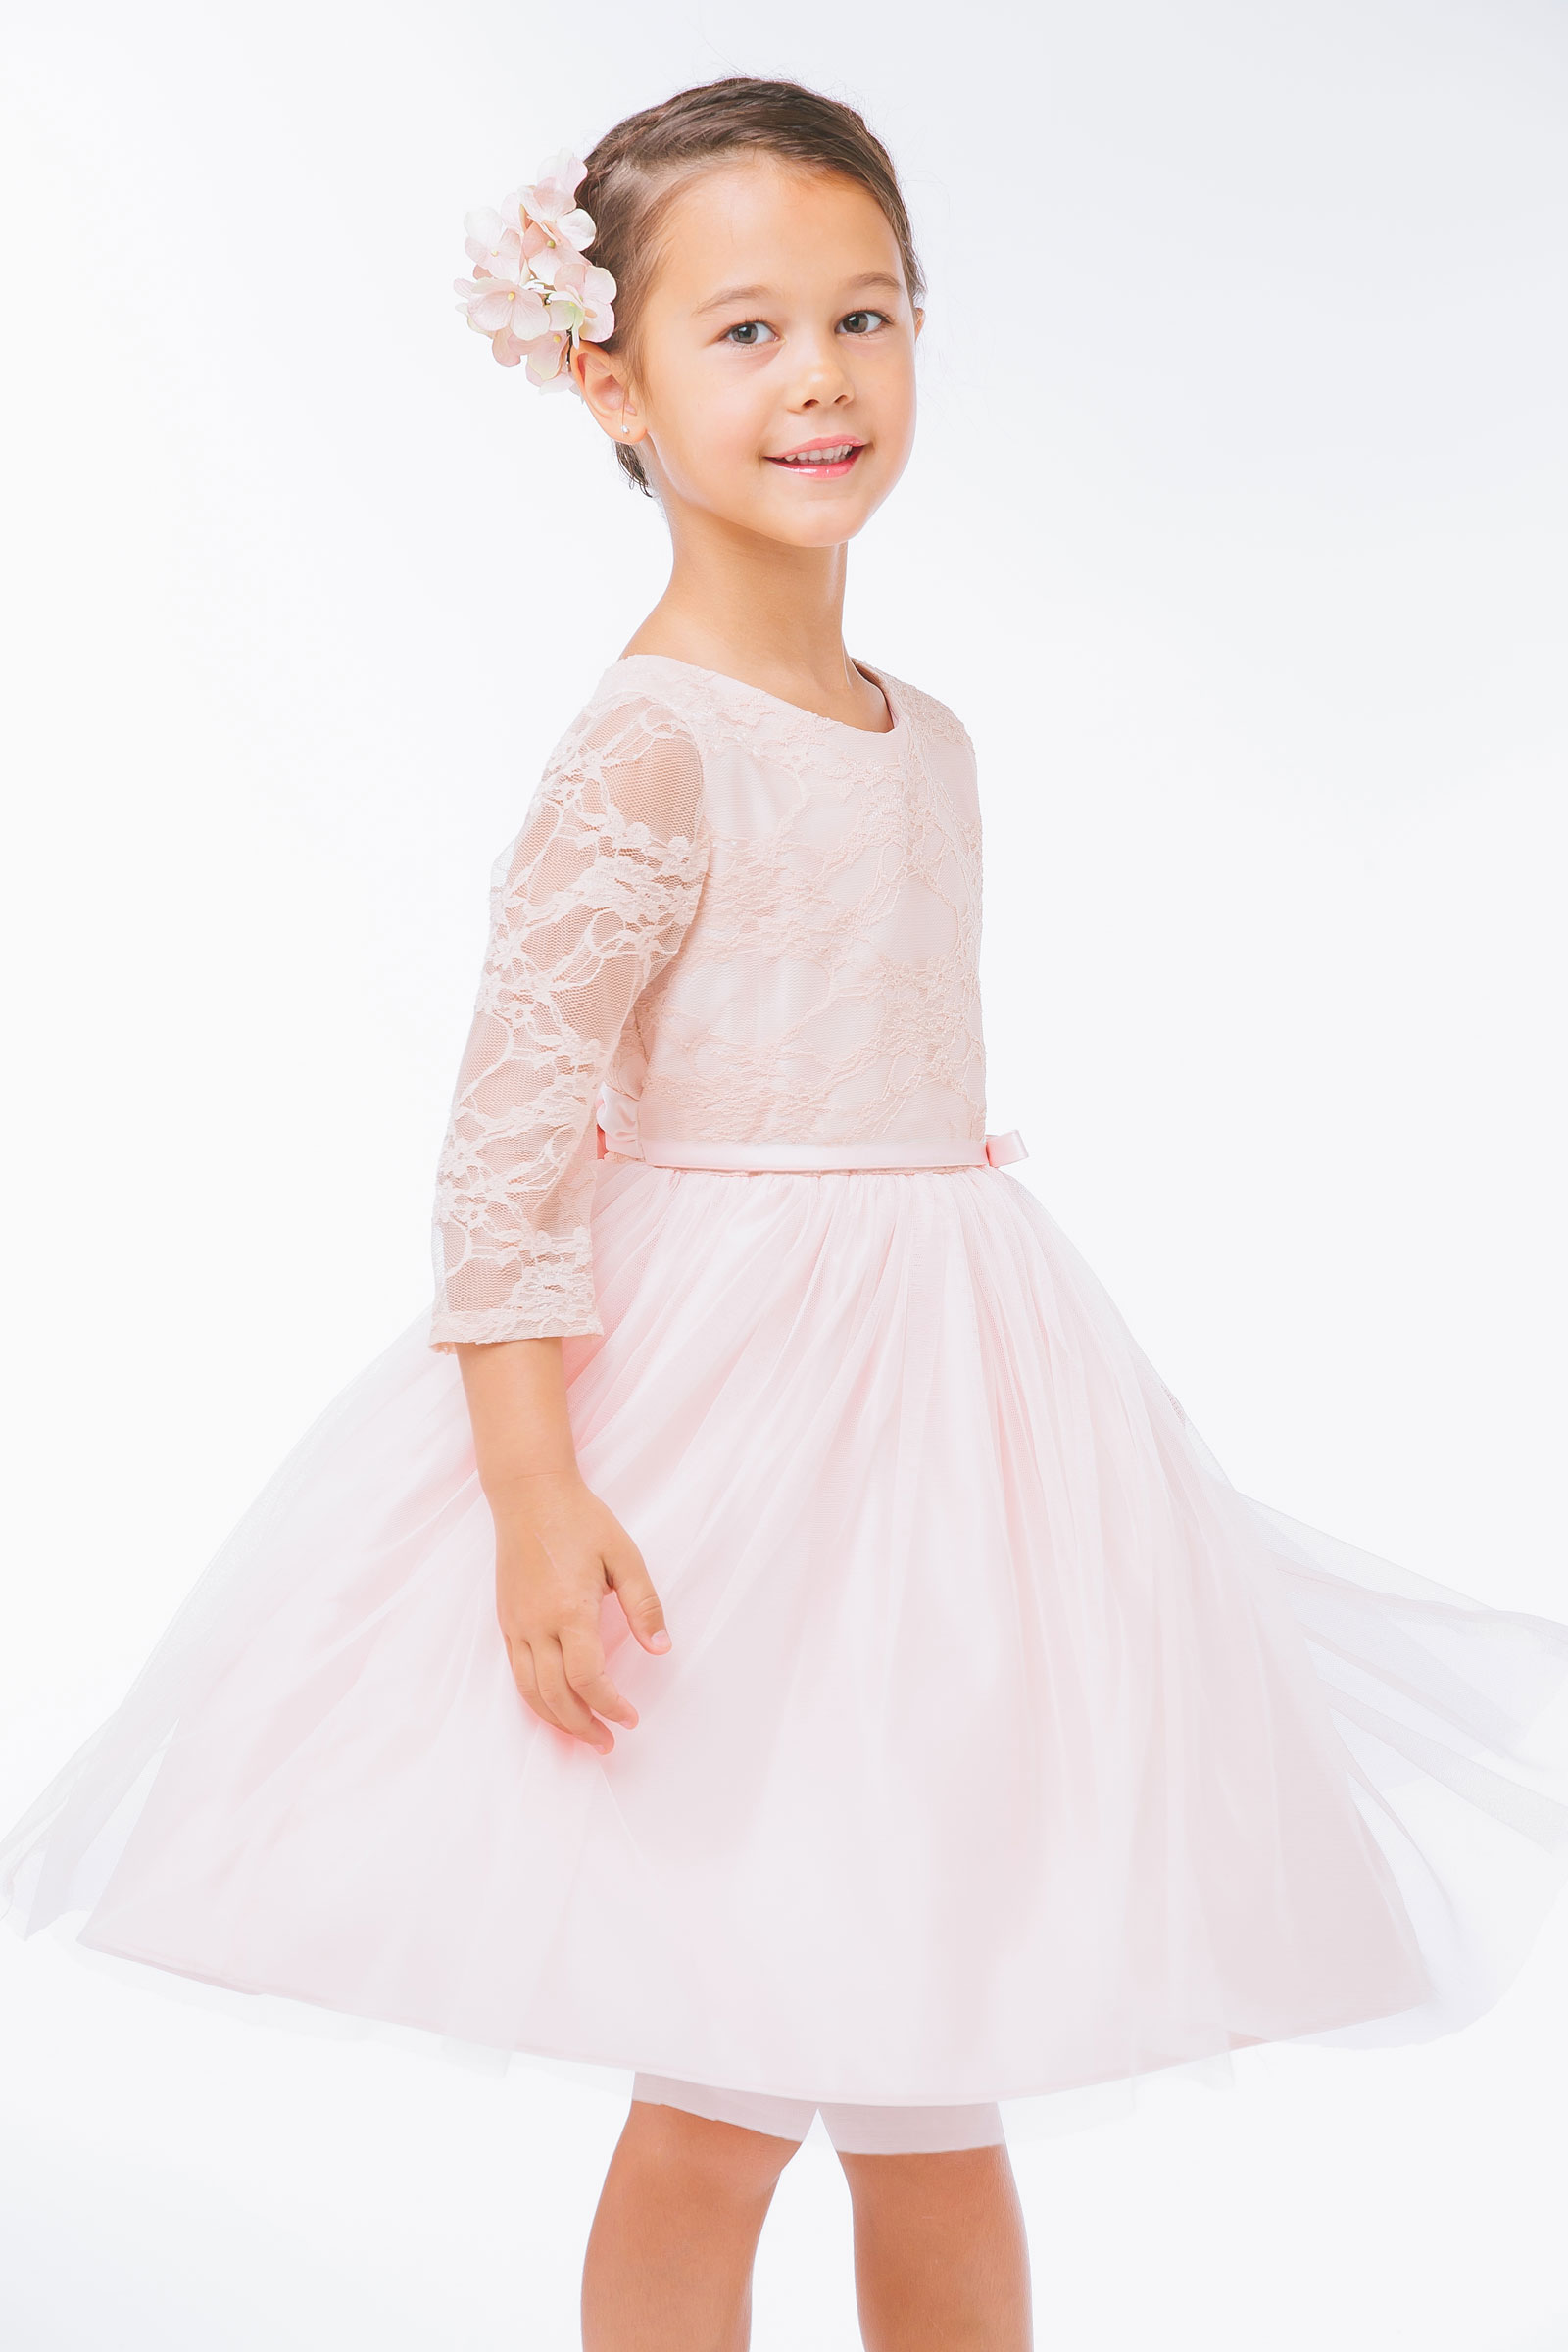 SK 599BL Girls Dress Style 599 Tulle Dress with Lace